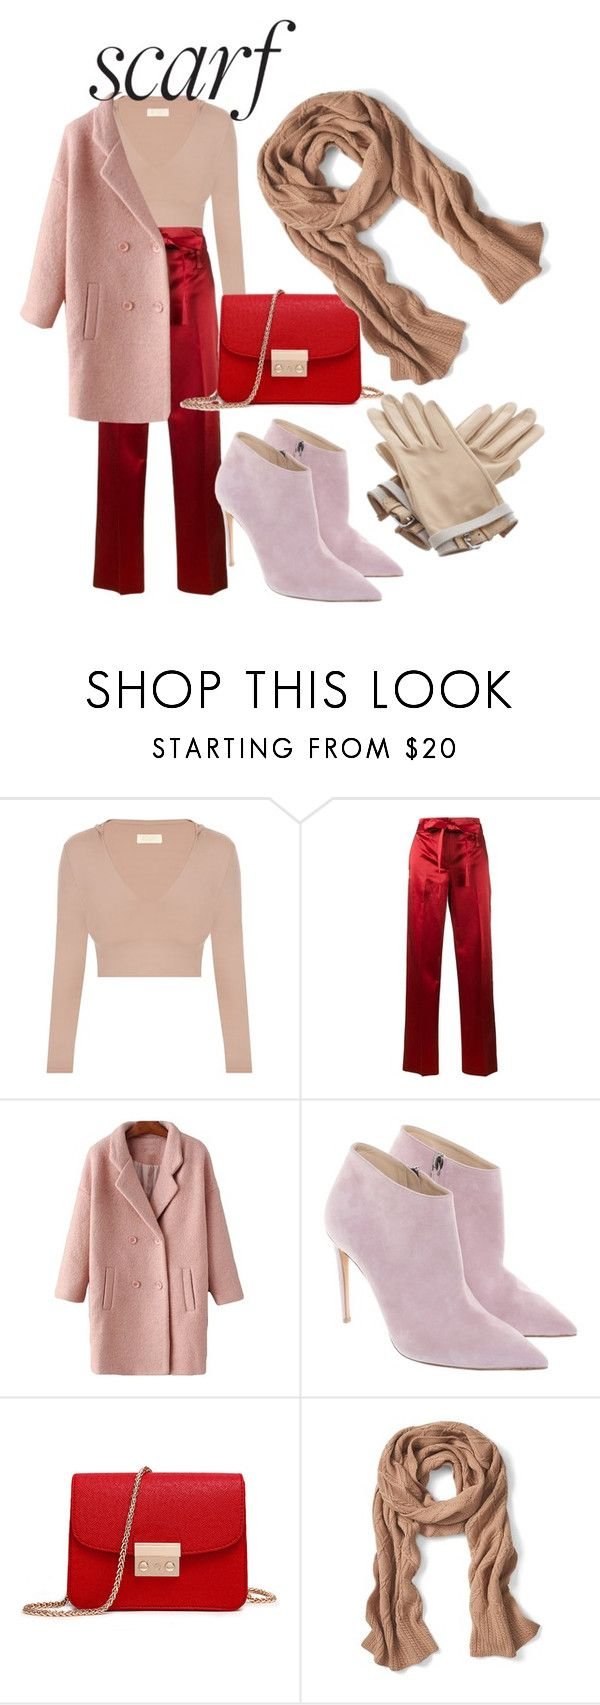 """Untitled #170"" by elza-345 ❤ liked on Polyvore featuring Helmut Lang, Ralph Lauren, Banana Republic and Hermès"